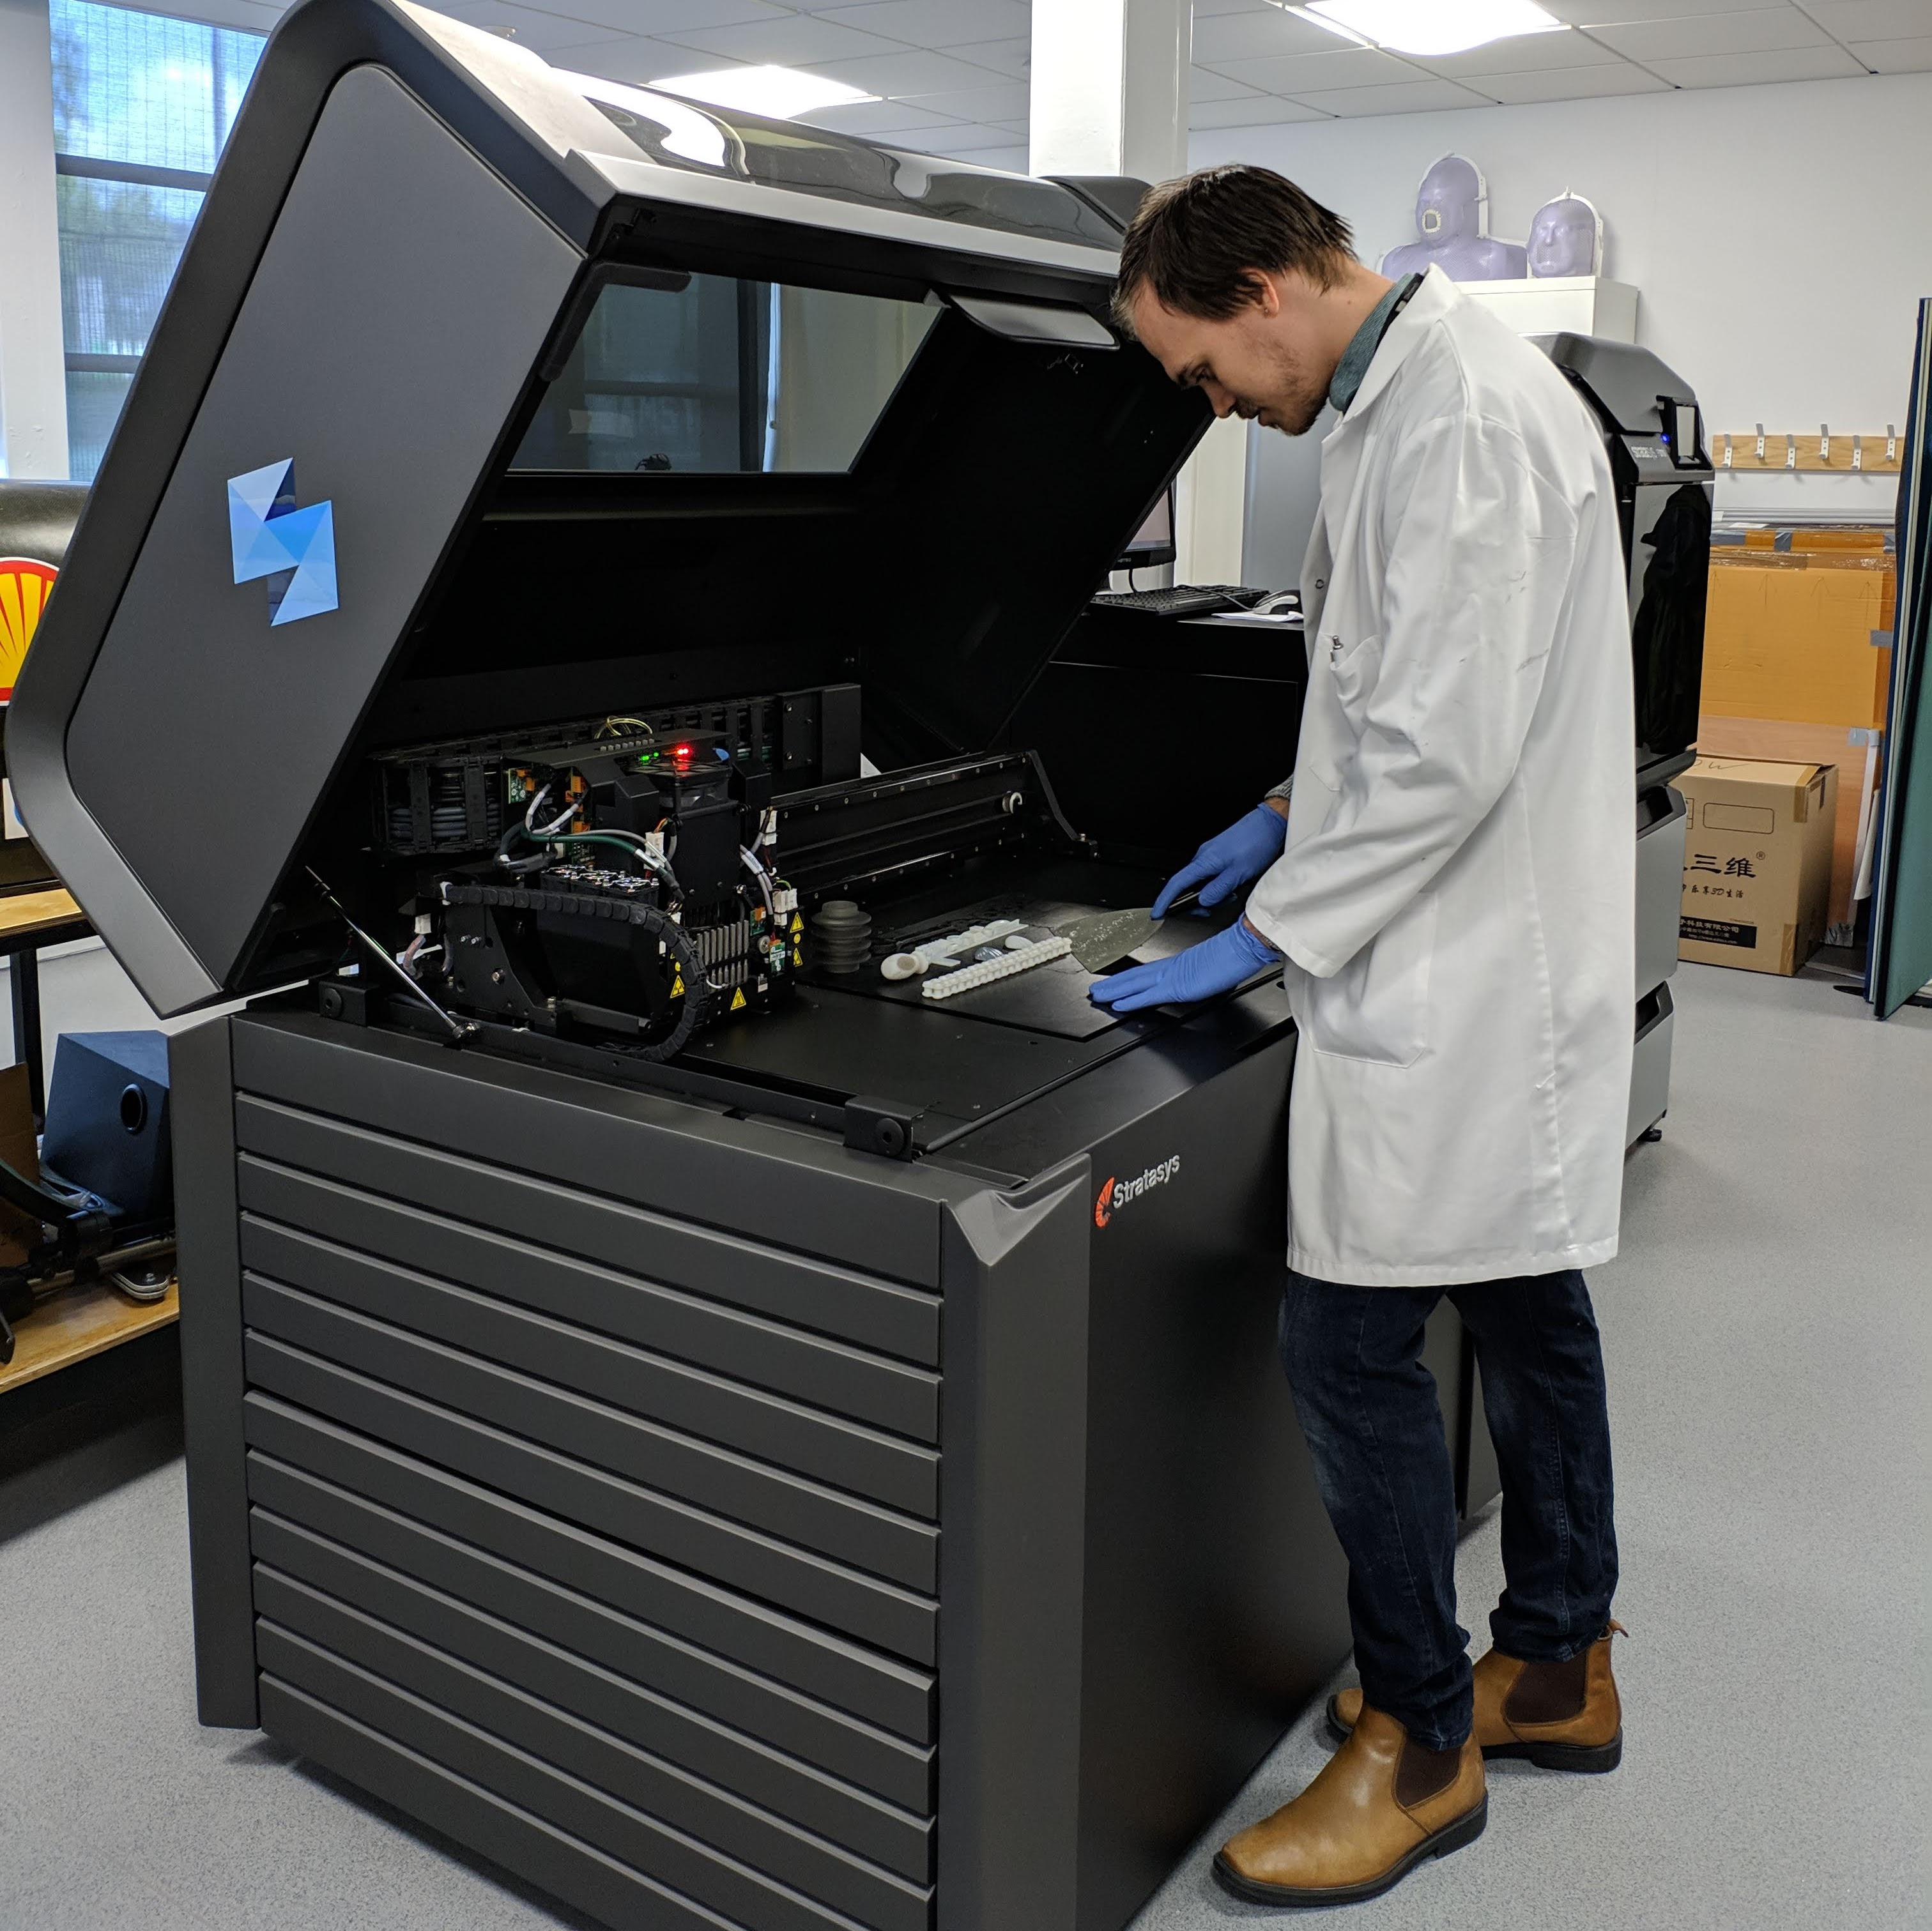 3D printing facilities at University of Suffolk (4)